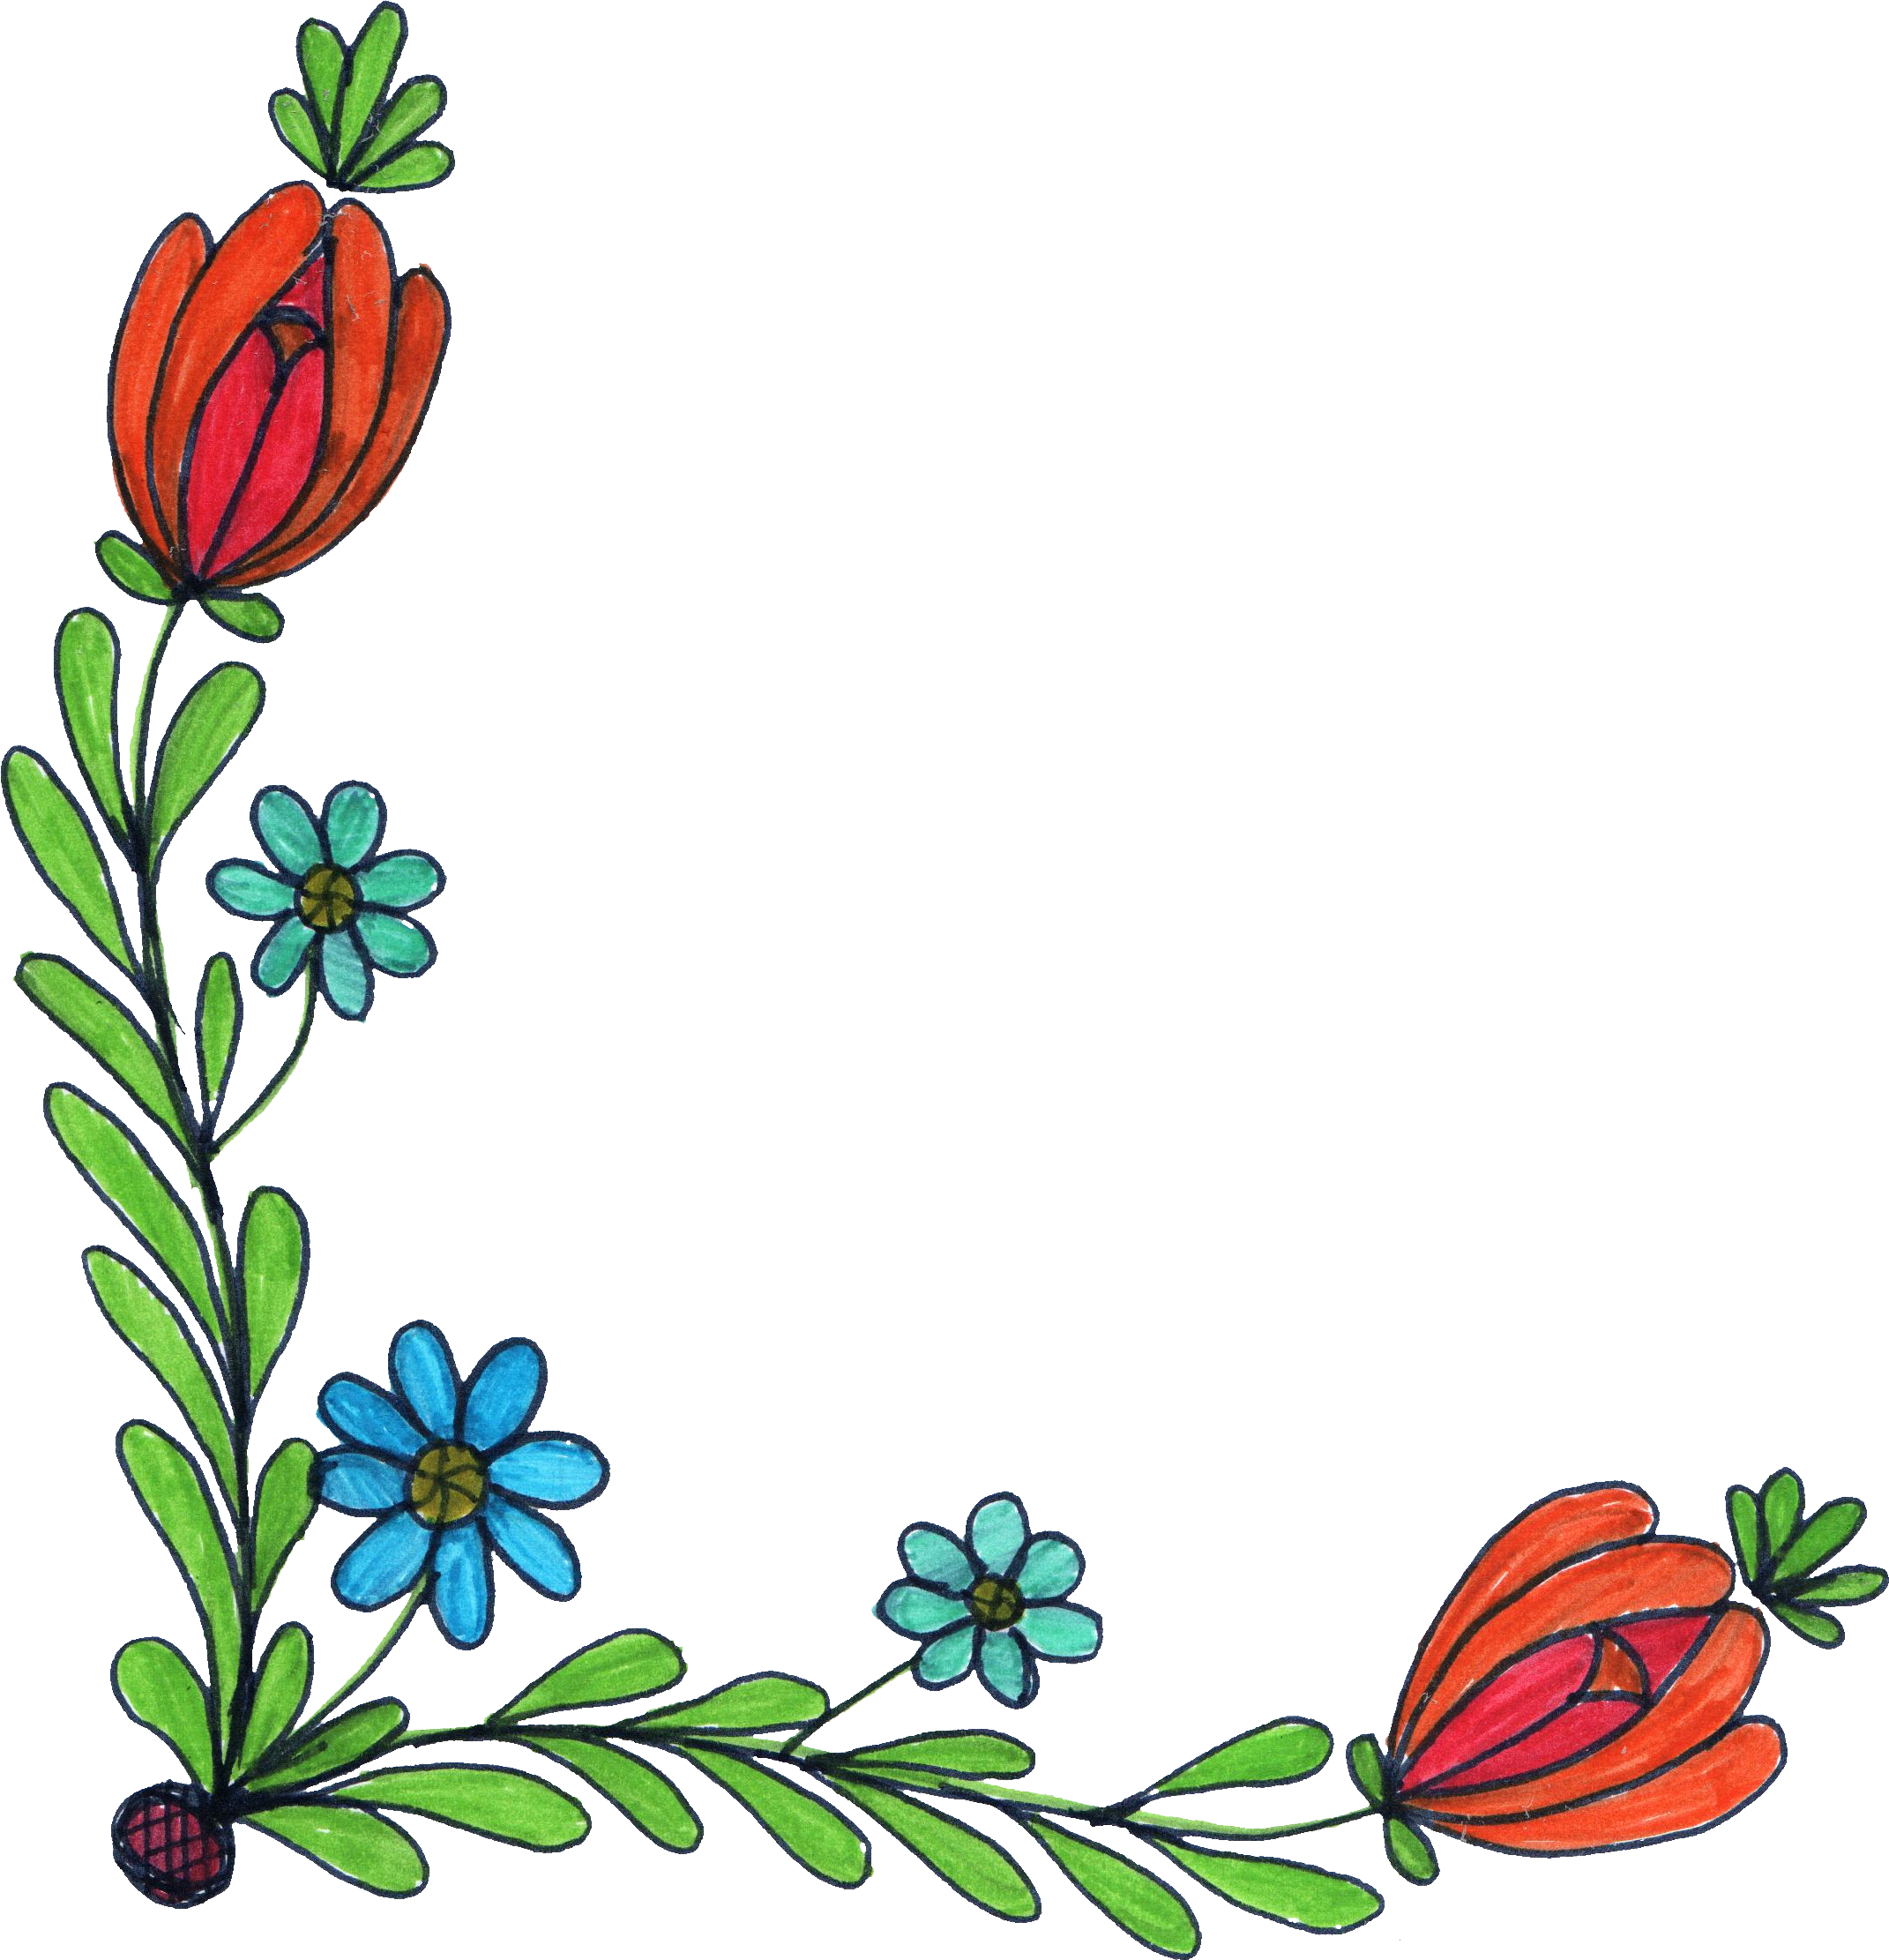 Flower drawing at getdrawings free for personal use flower 2142x2222 5 flower corner drawing png transparent thecheapjerseys Choice Image